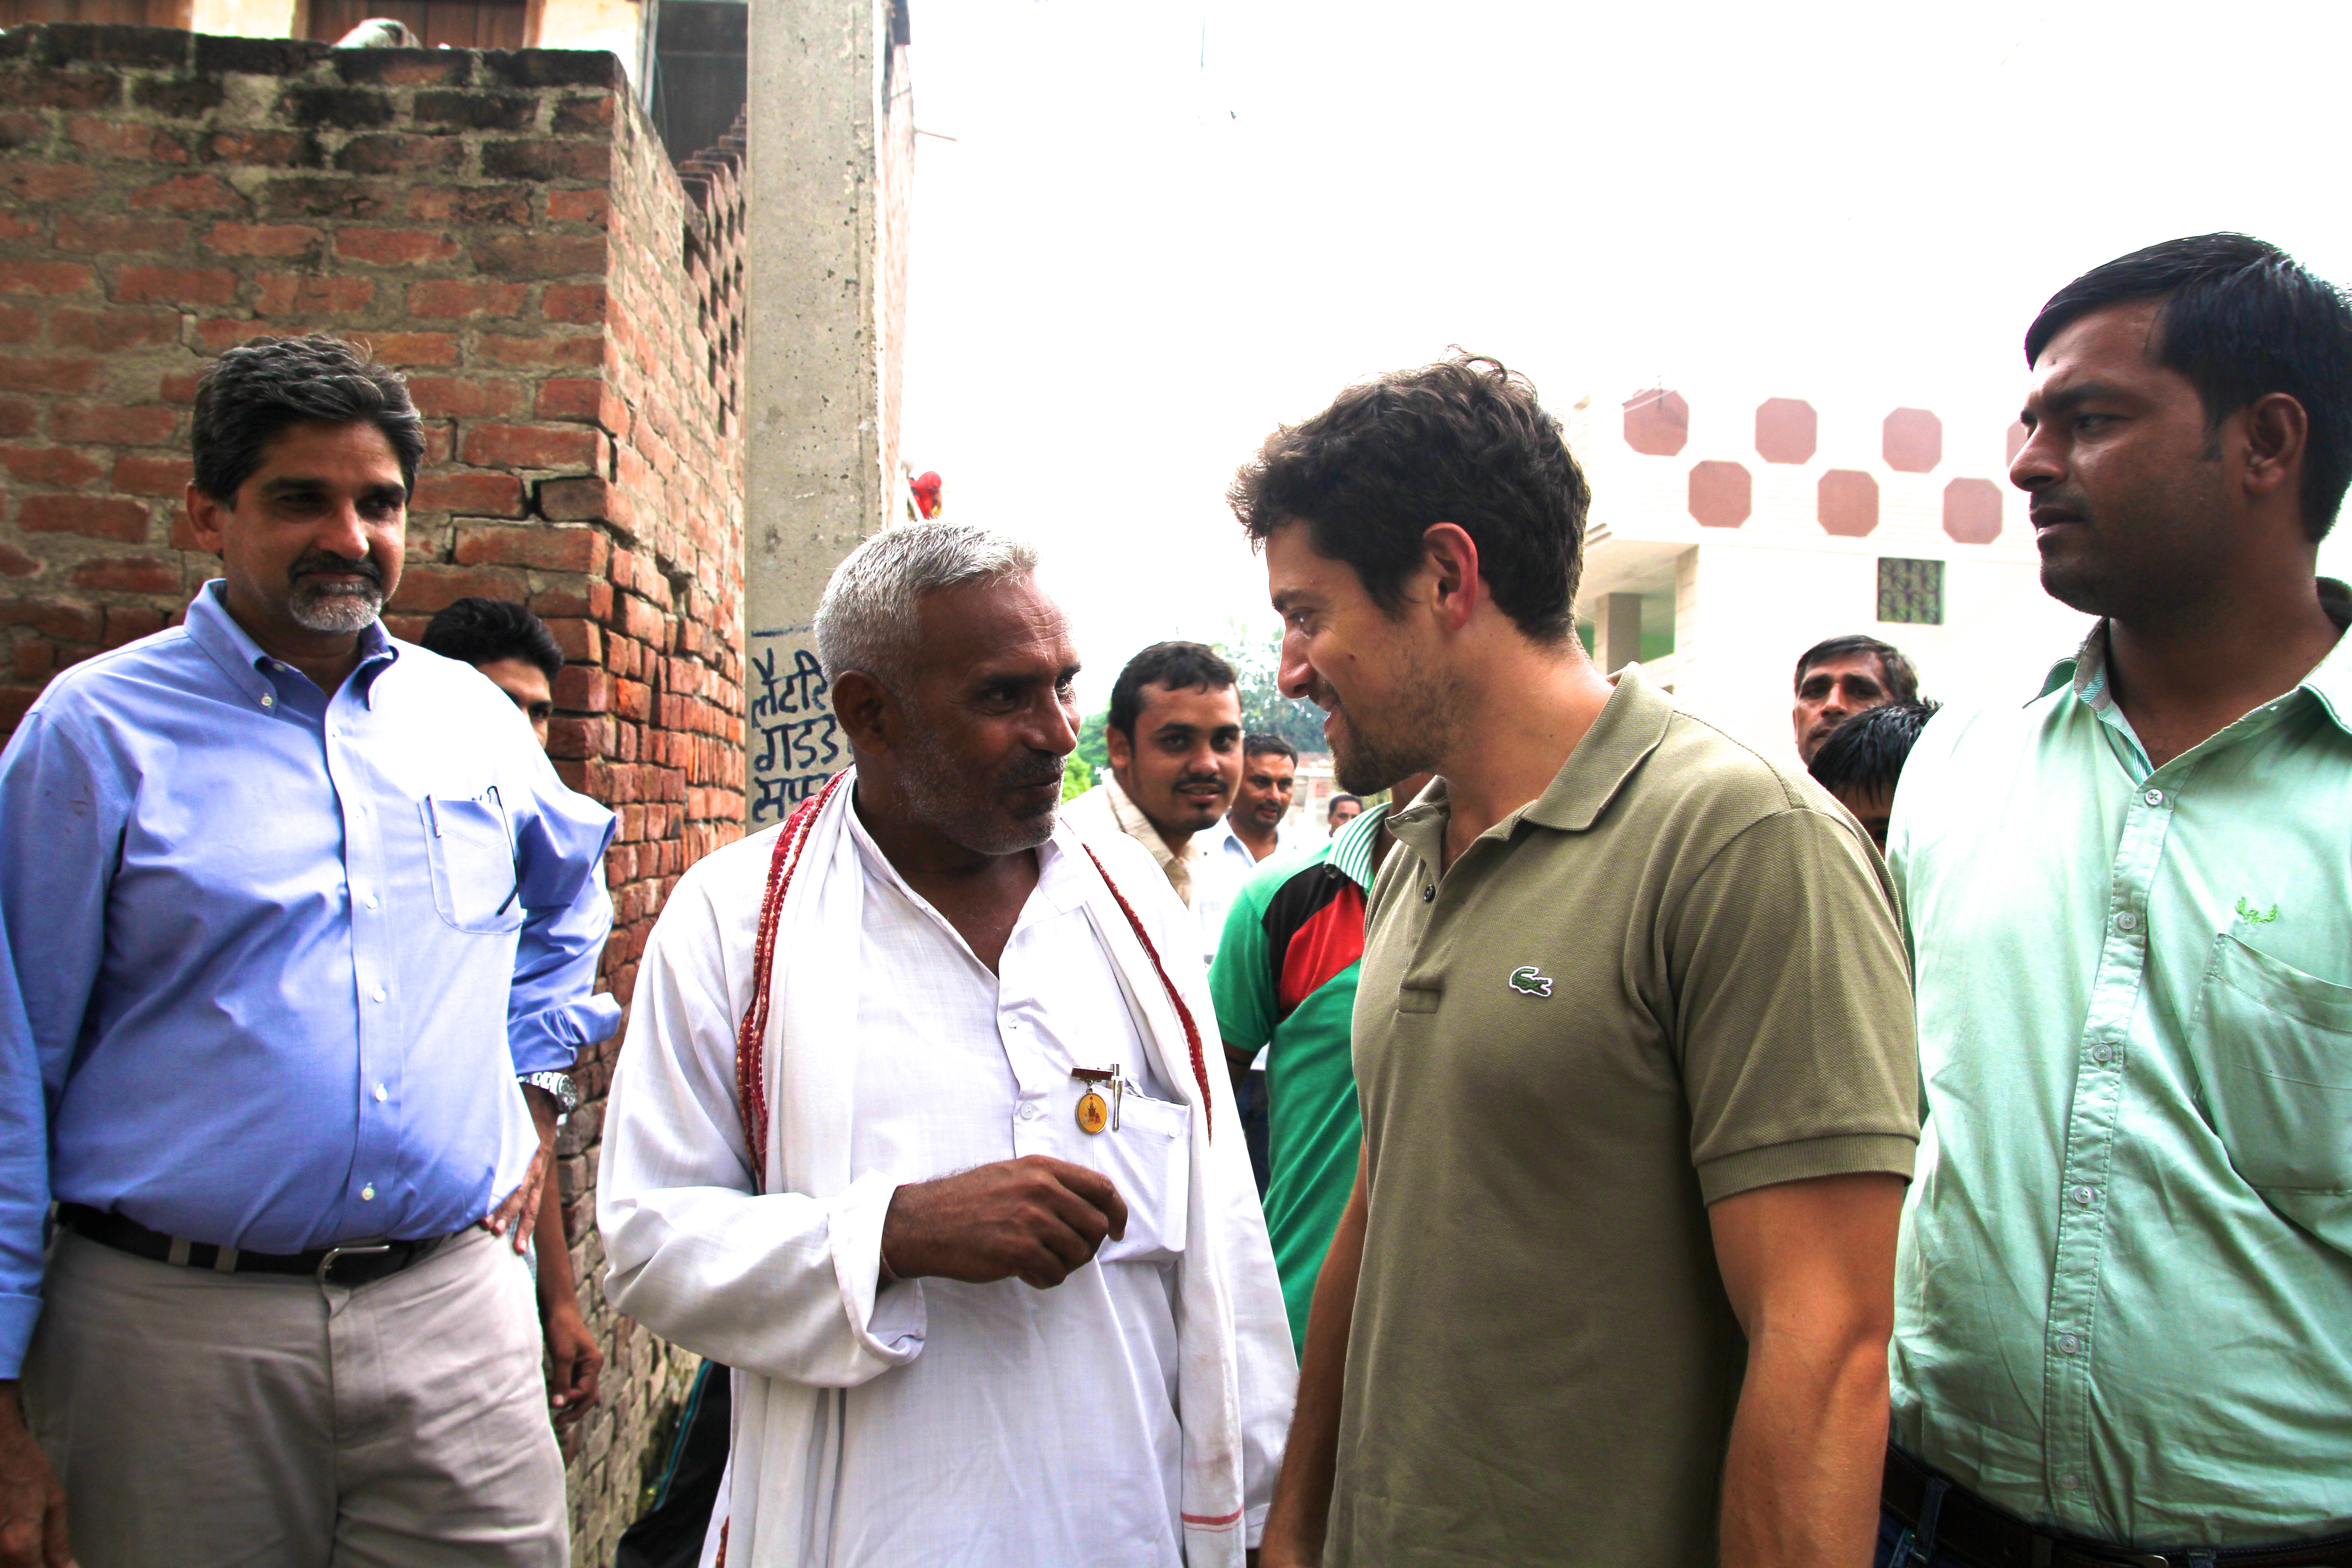 Zach meets the president,  sarpanch , of Hathlana village, Karnal District